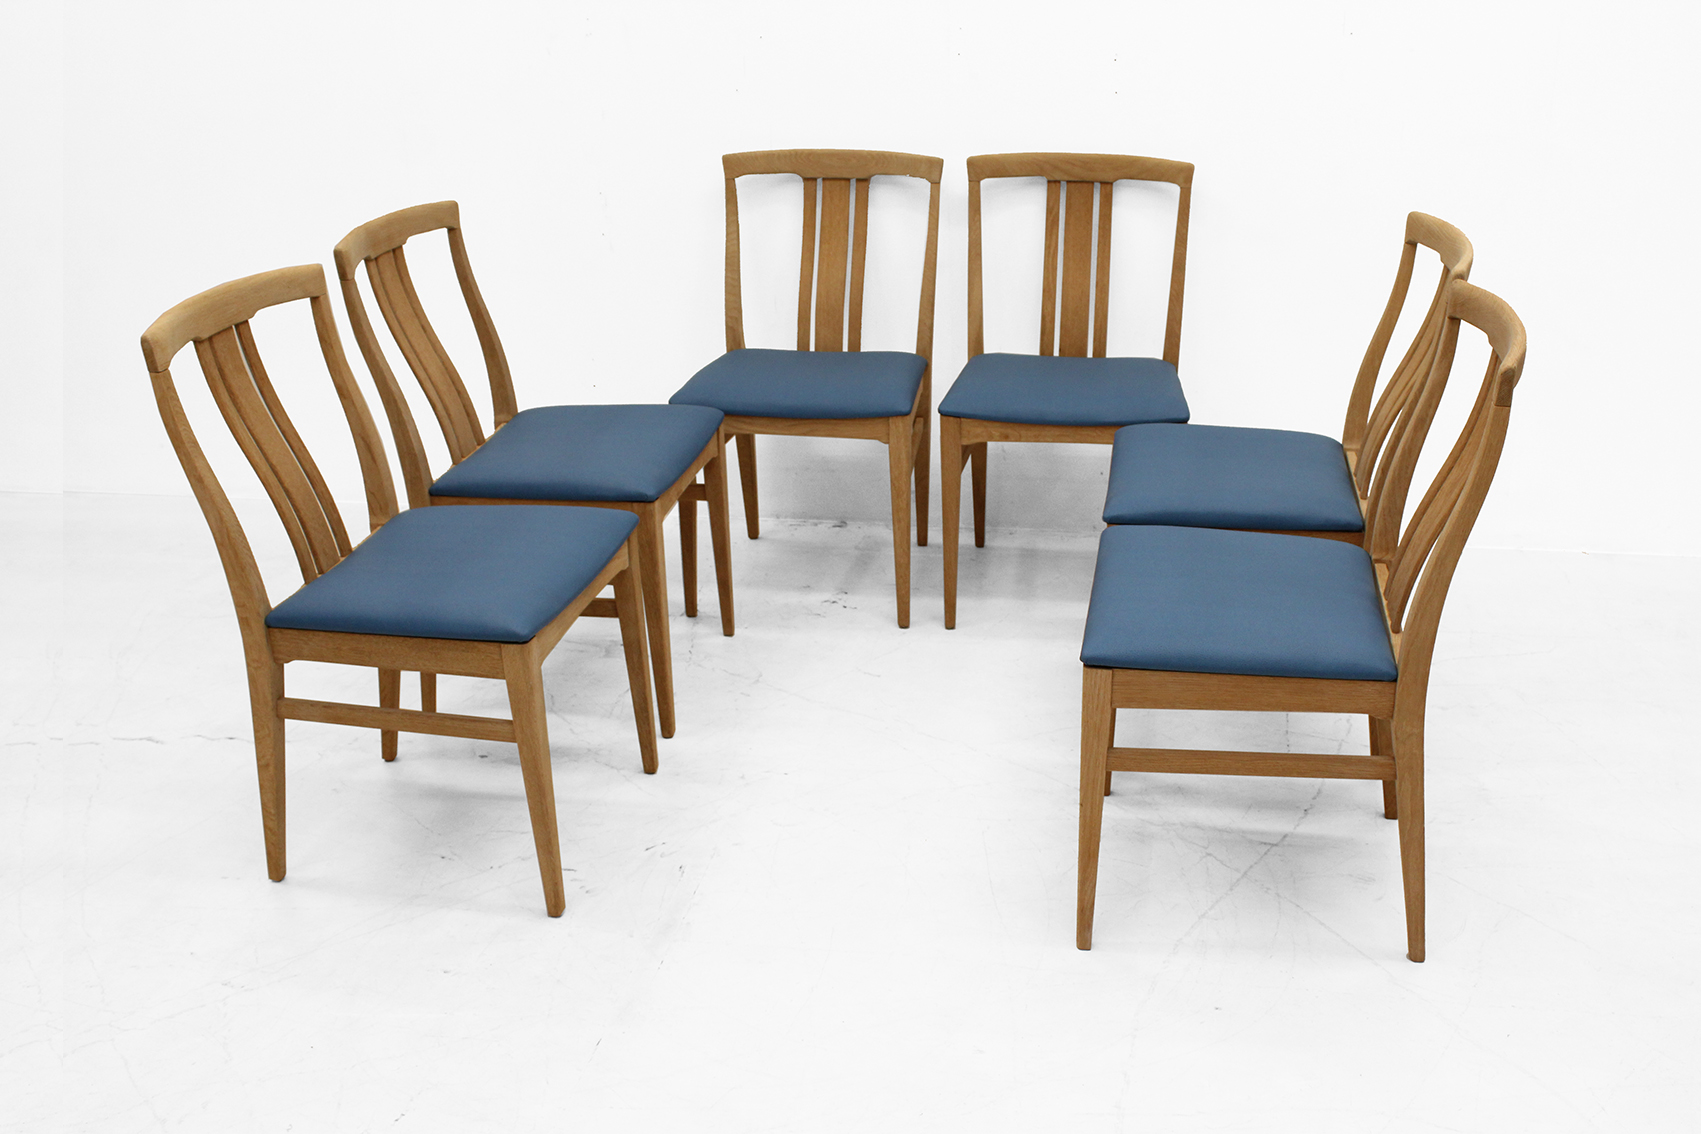 Set of six chairs in natural light oak